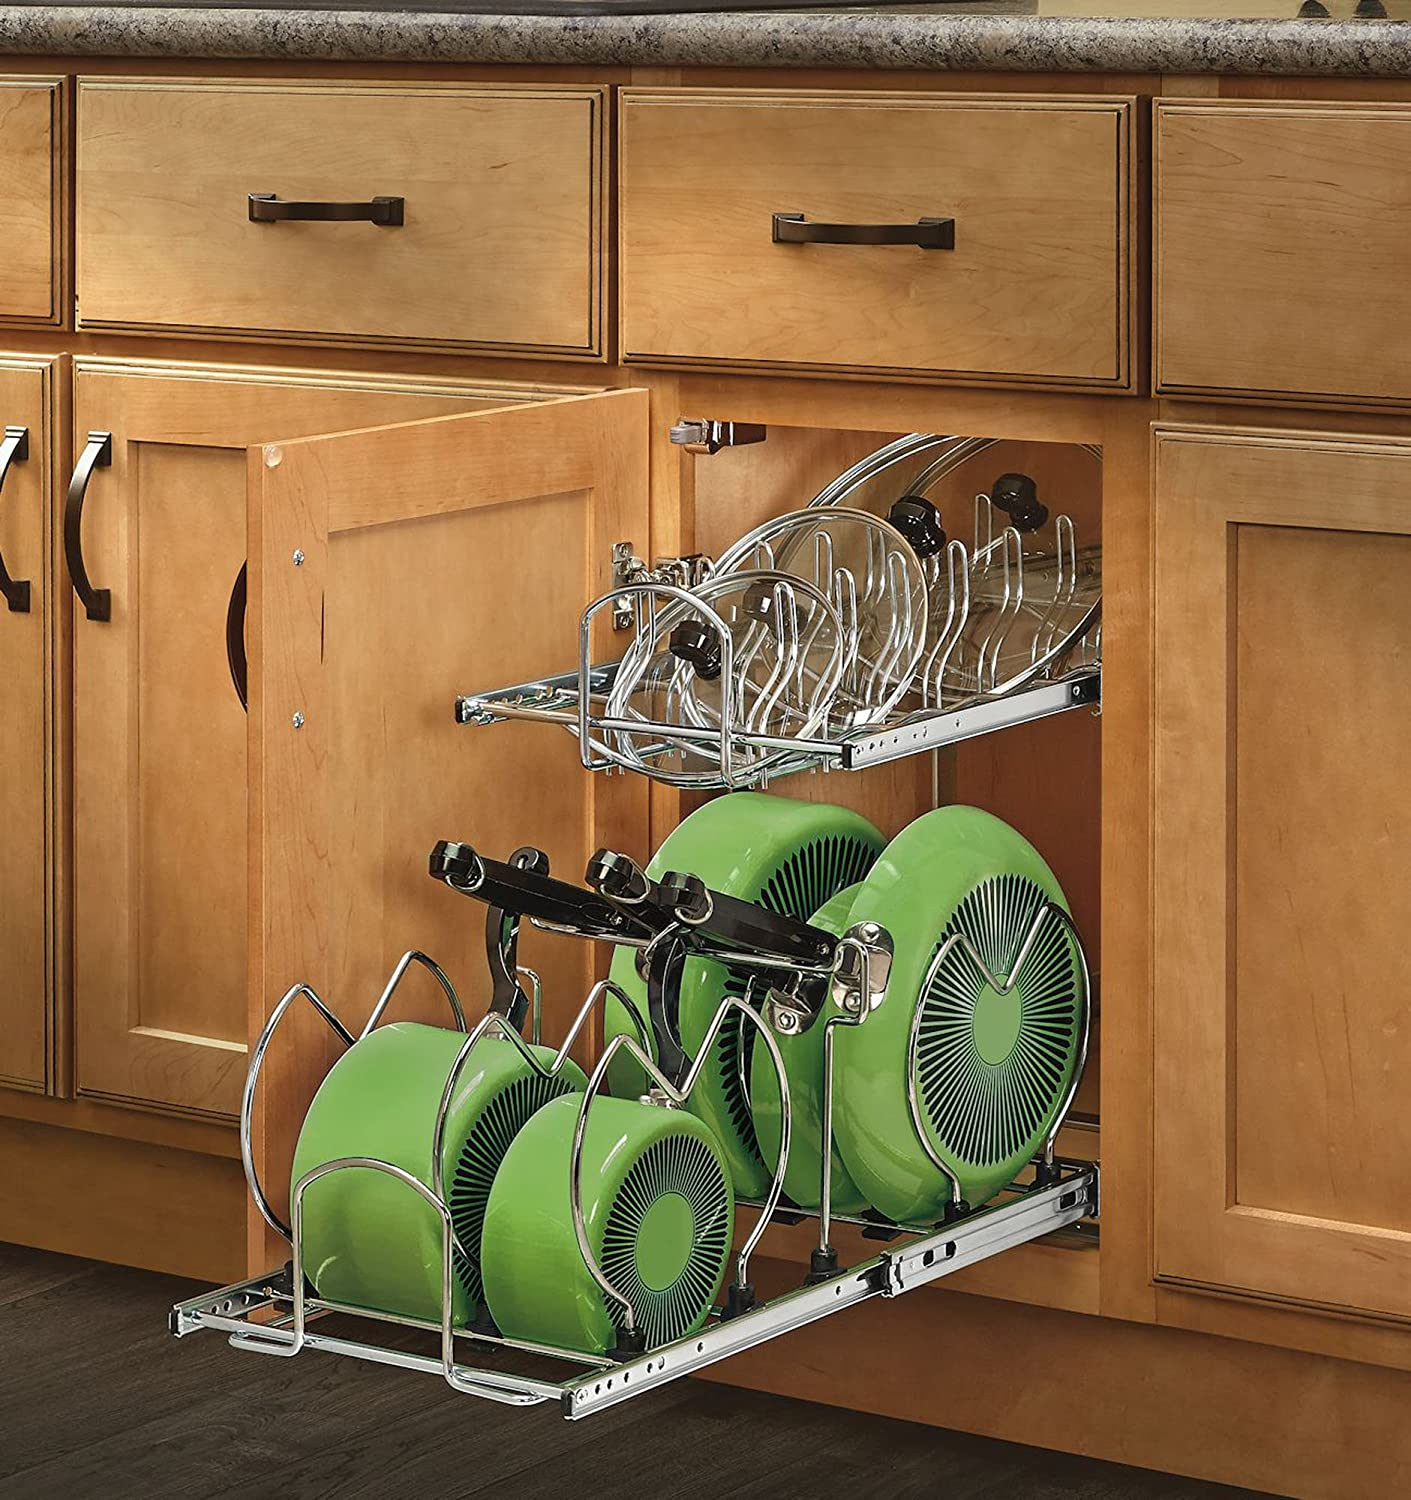 d pull sink reduced rev accessories kitchen shelf basket home cr pullout out a inches x com wire amazon base cabinet tier dp w depth organizer